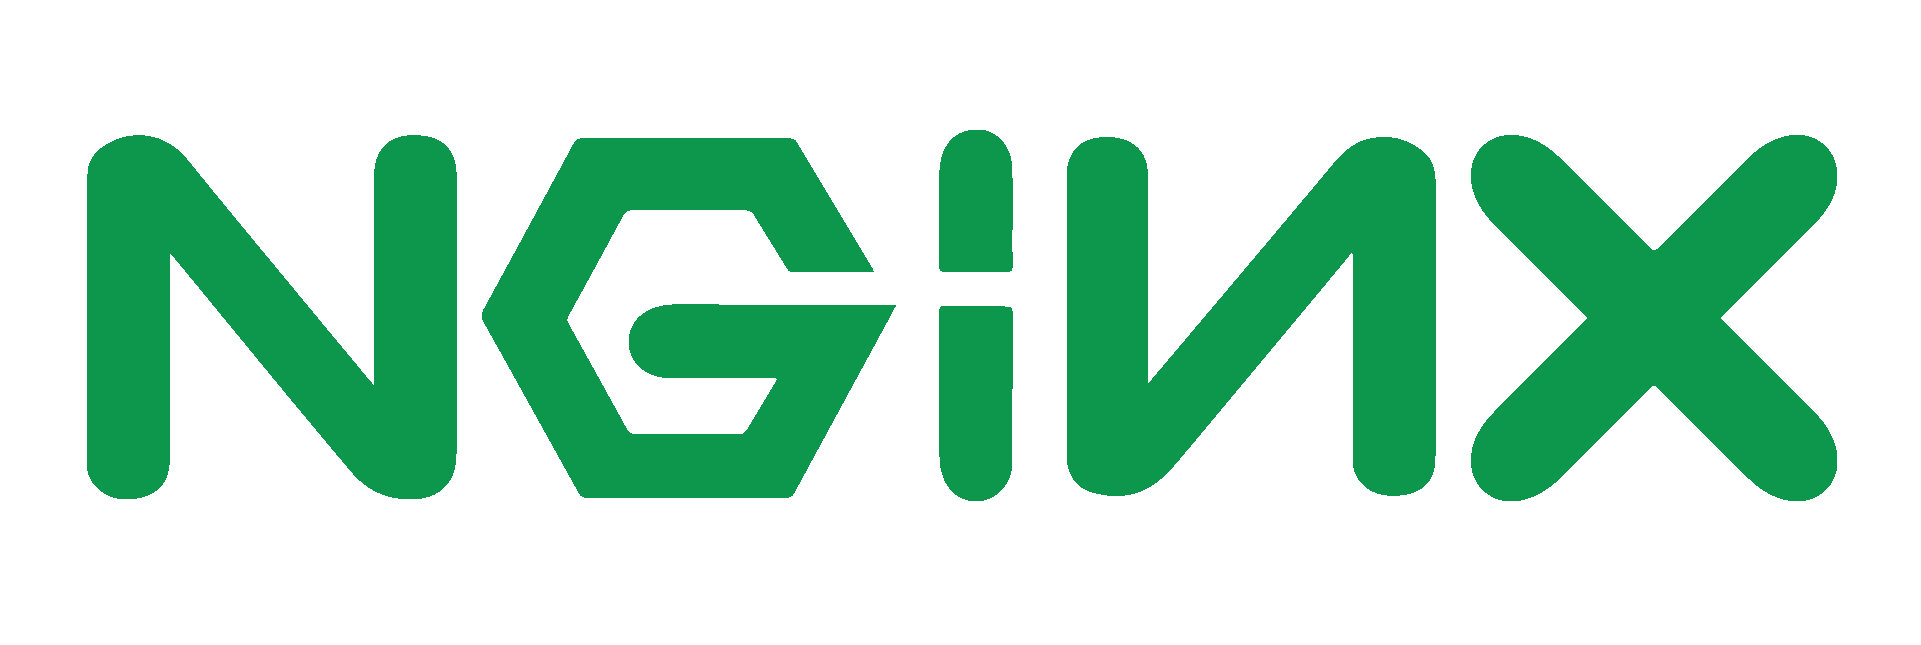 How to install Nginx on CentOS 7